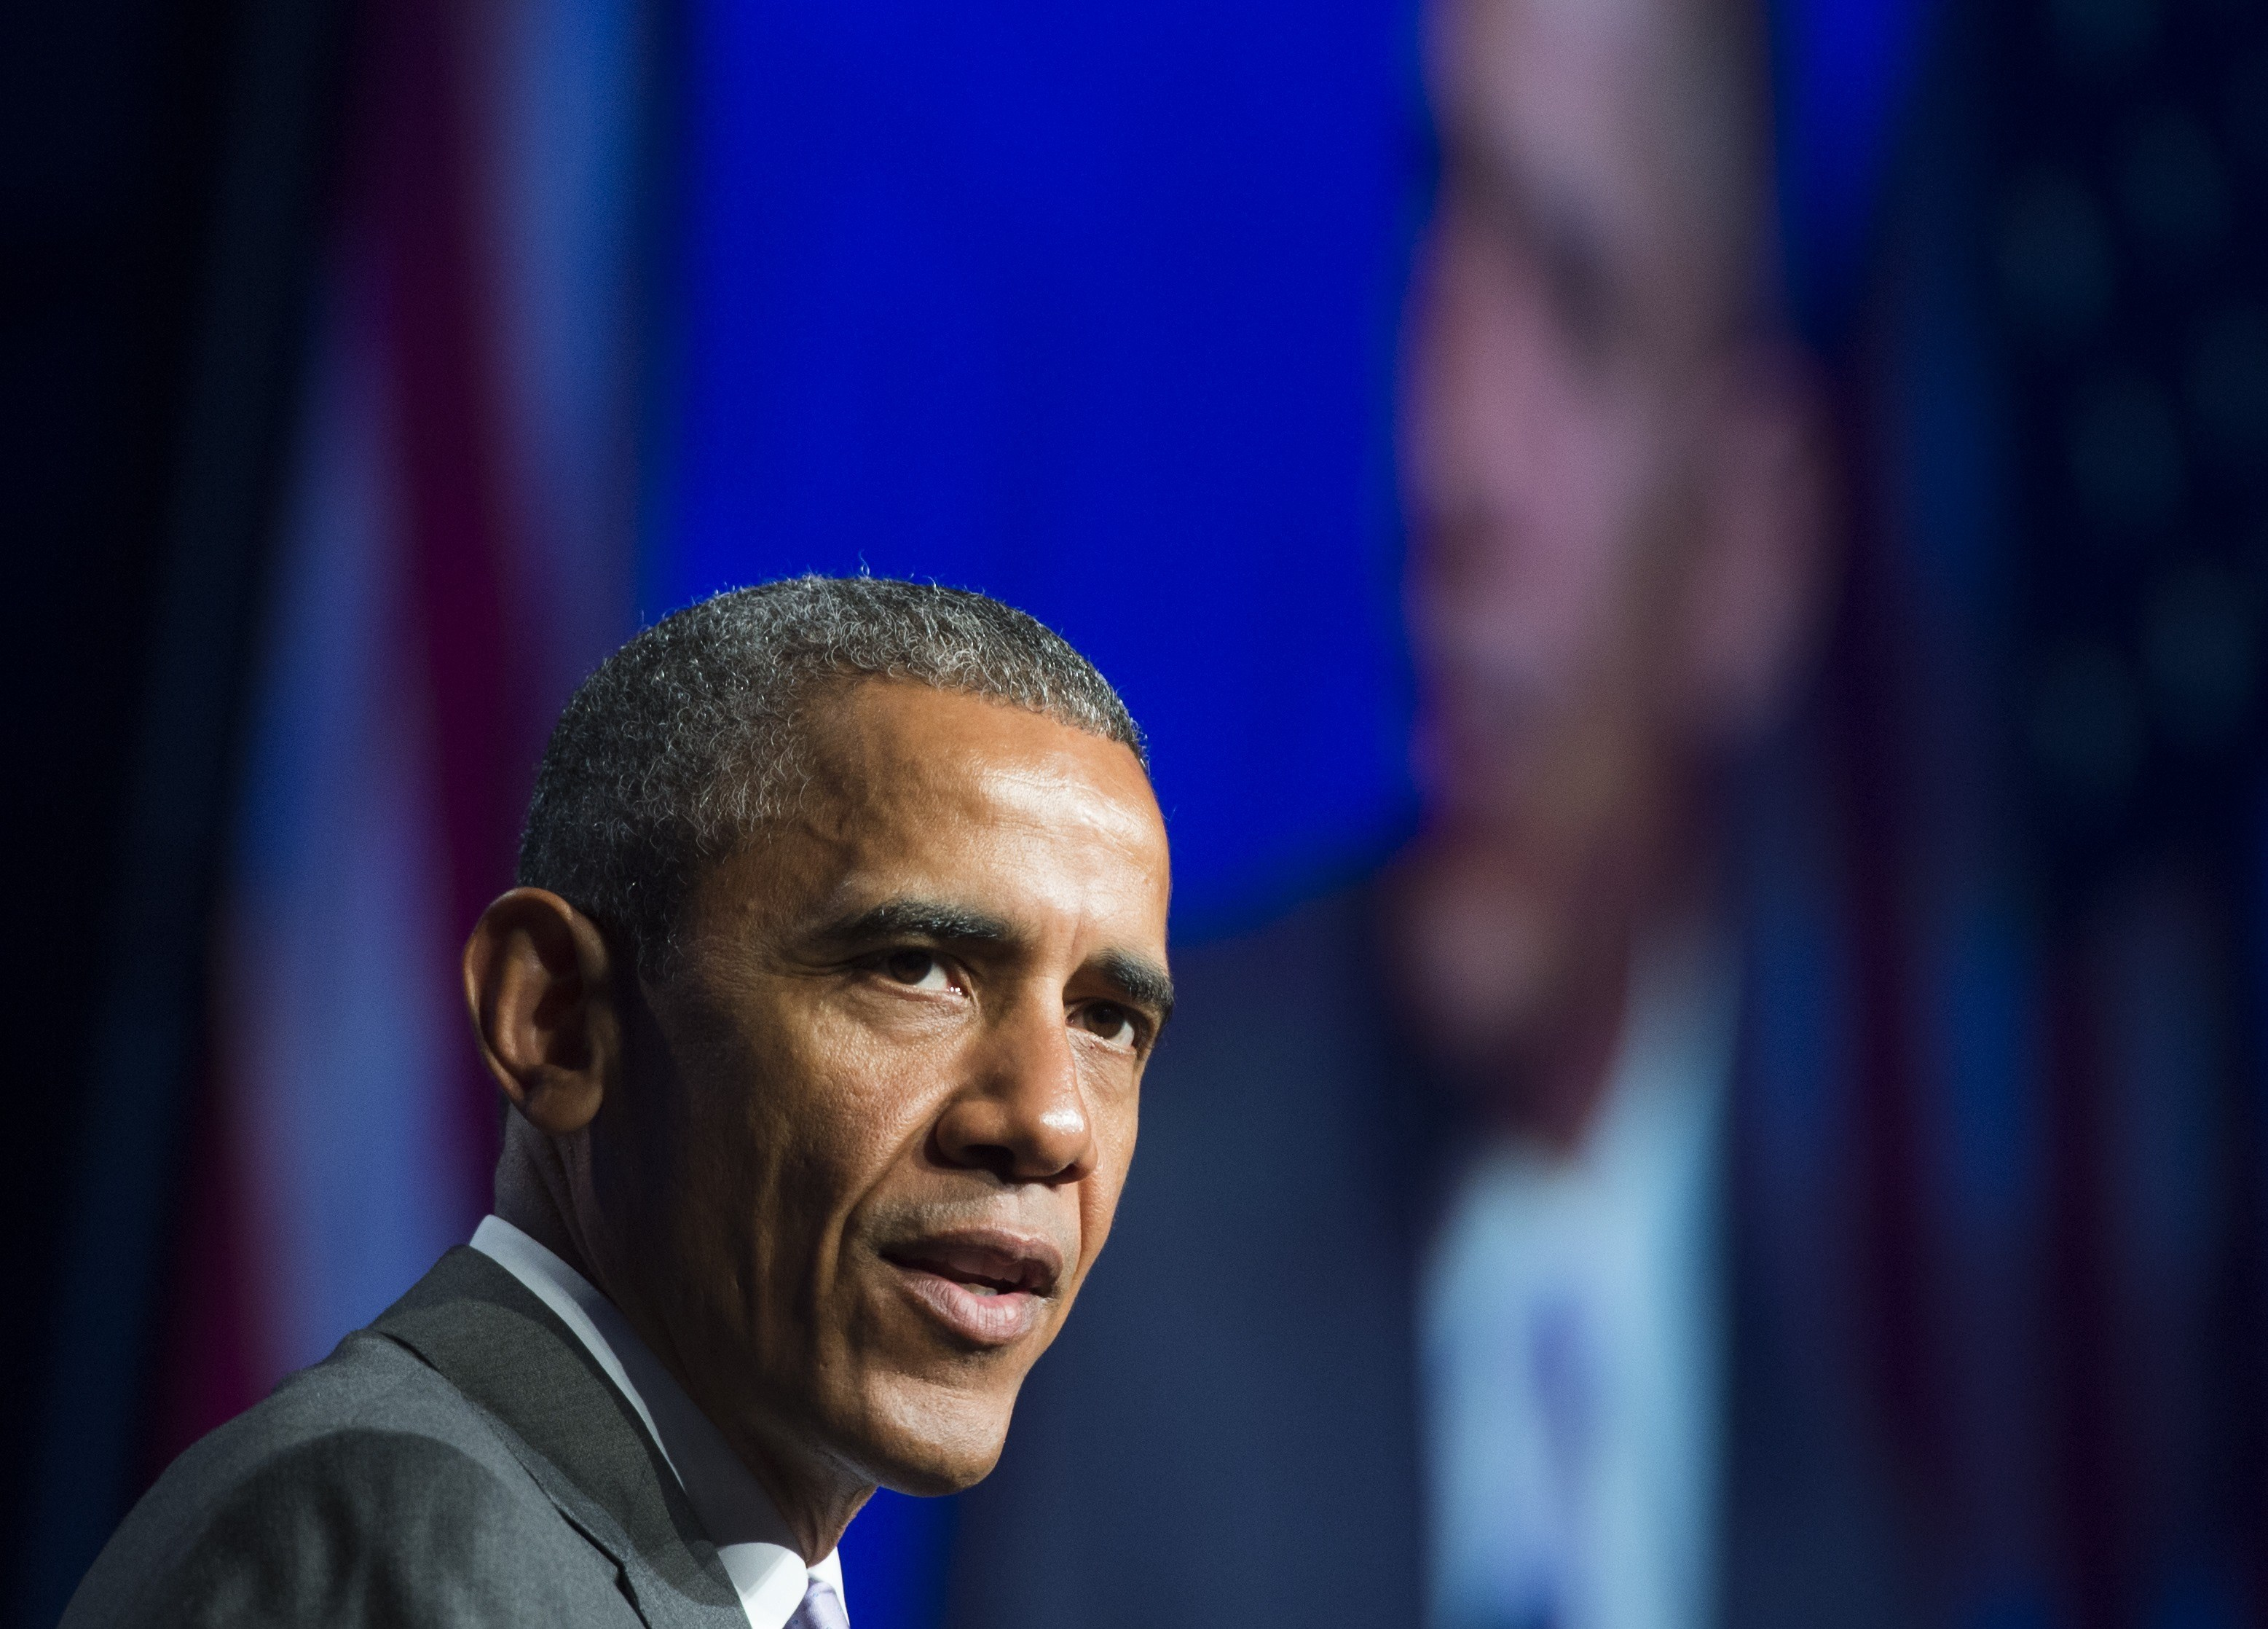 President Barack Obama speaks about healthcare reforms and the Affordable Care Act, known as Obamacare, during the Catholic Hospital Association Conference in Washington on June 9, 2015.